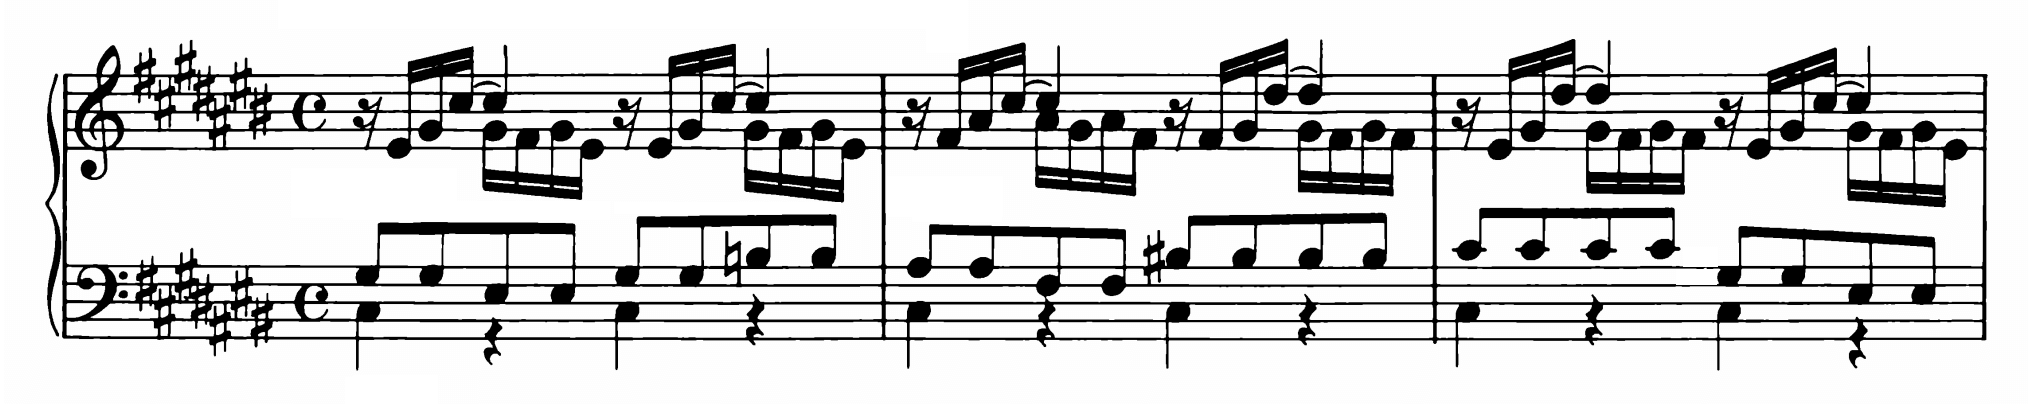 Bach: Prelude and Fugue No.3 in C♯ major, BWV 872 Analysis